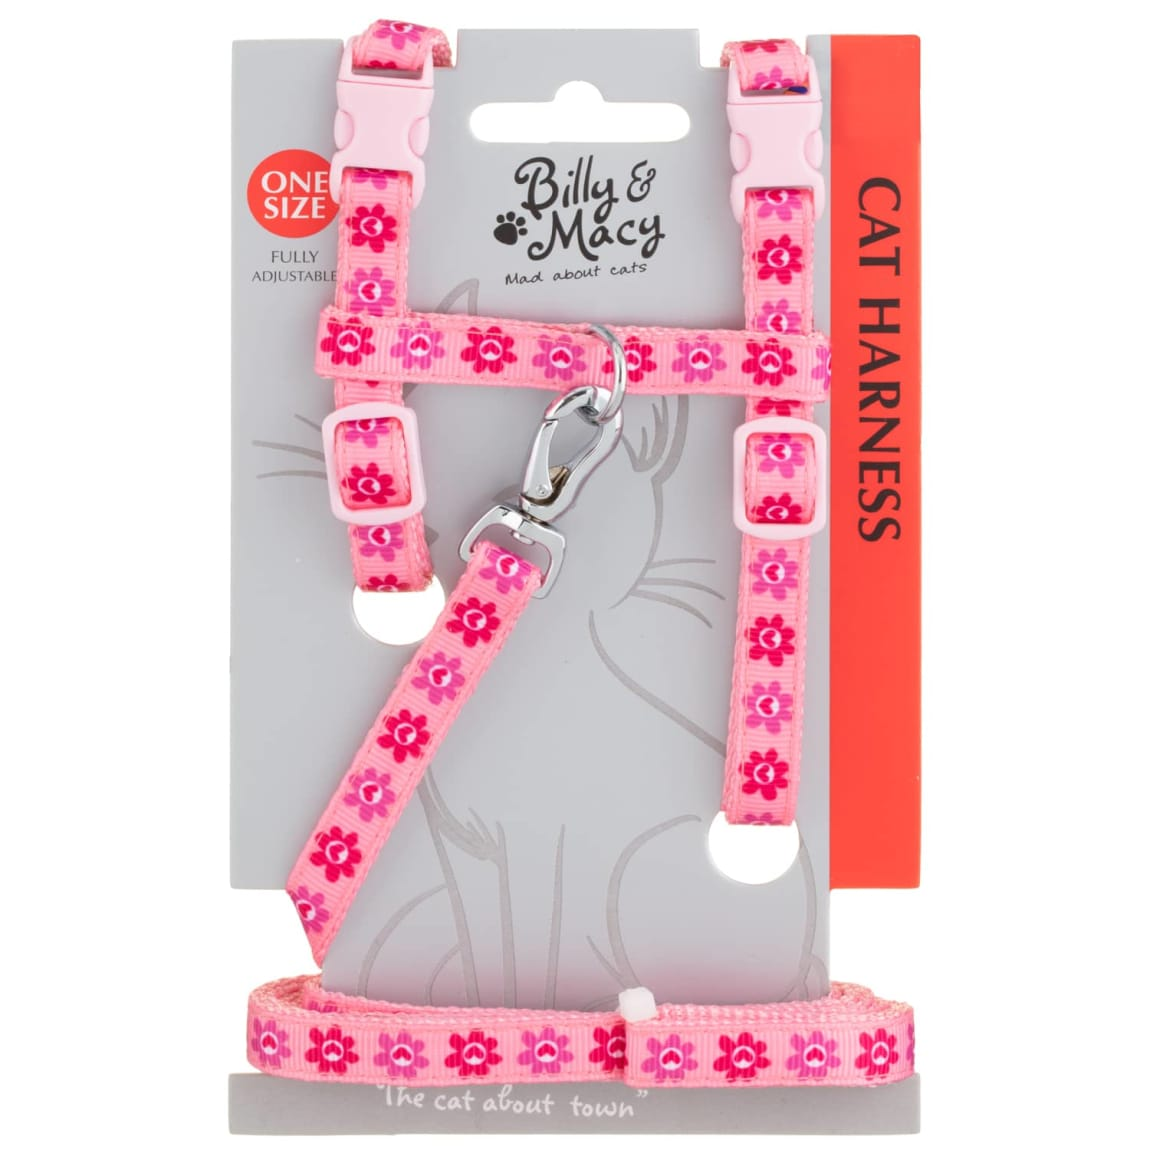 Billy & Macy Cat Harness - Pink